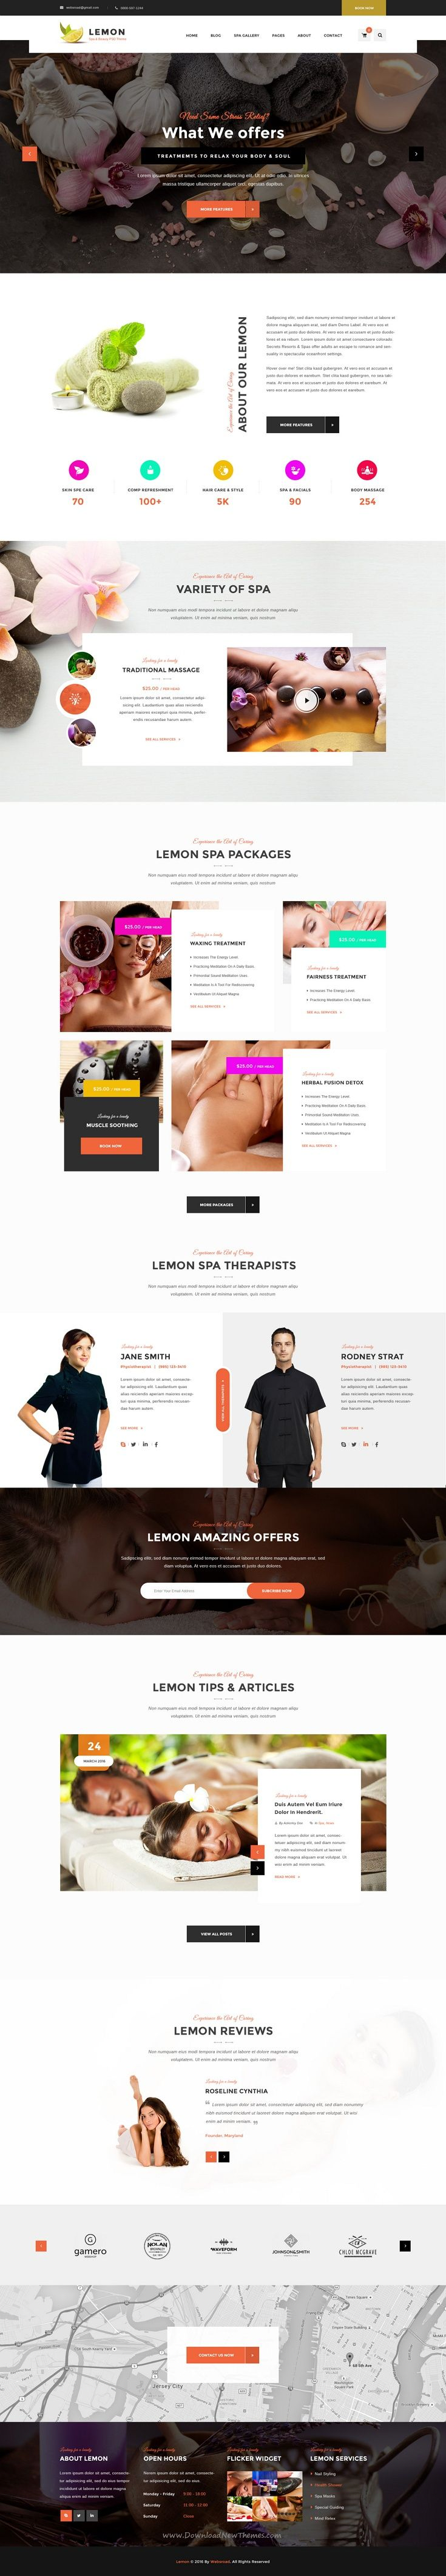 Awesome 010 Editor Templates Thick 1300 Resume Government Samples Selection Criteria Solid 18th Birthday Invitation Templates 1st Job Resume Template Old 2014 Printable Calendar Template Dark24 Hour Timeline Template 25  Best Ideas About Salon Website On Pinterest | Website Design ..